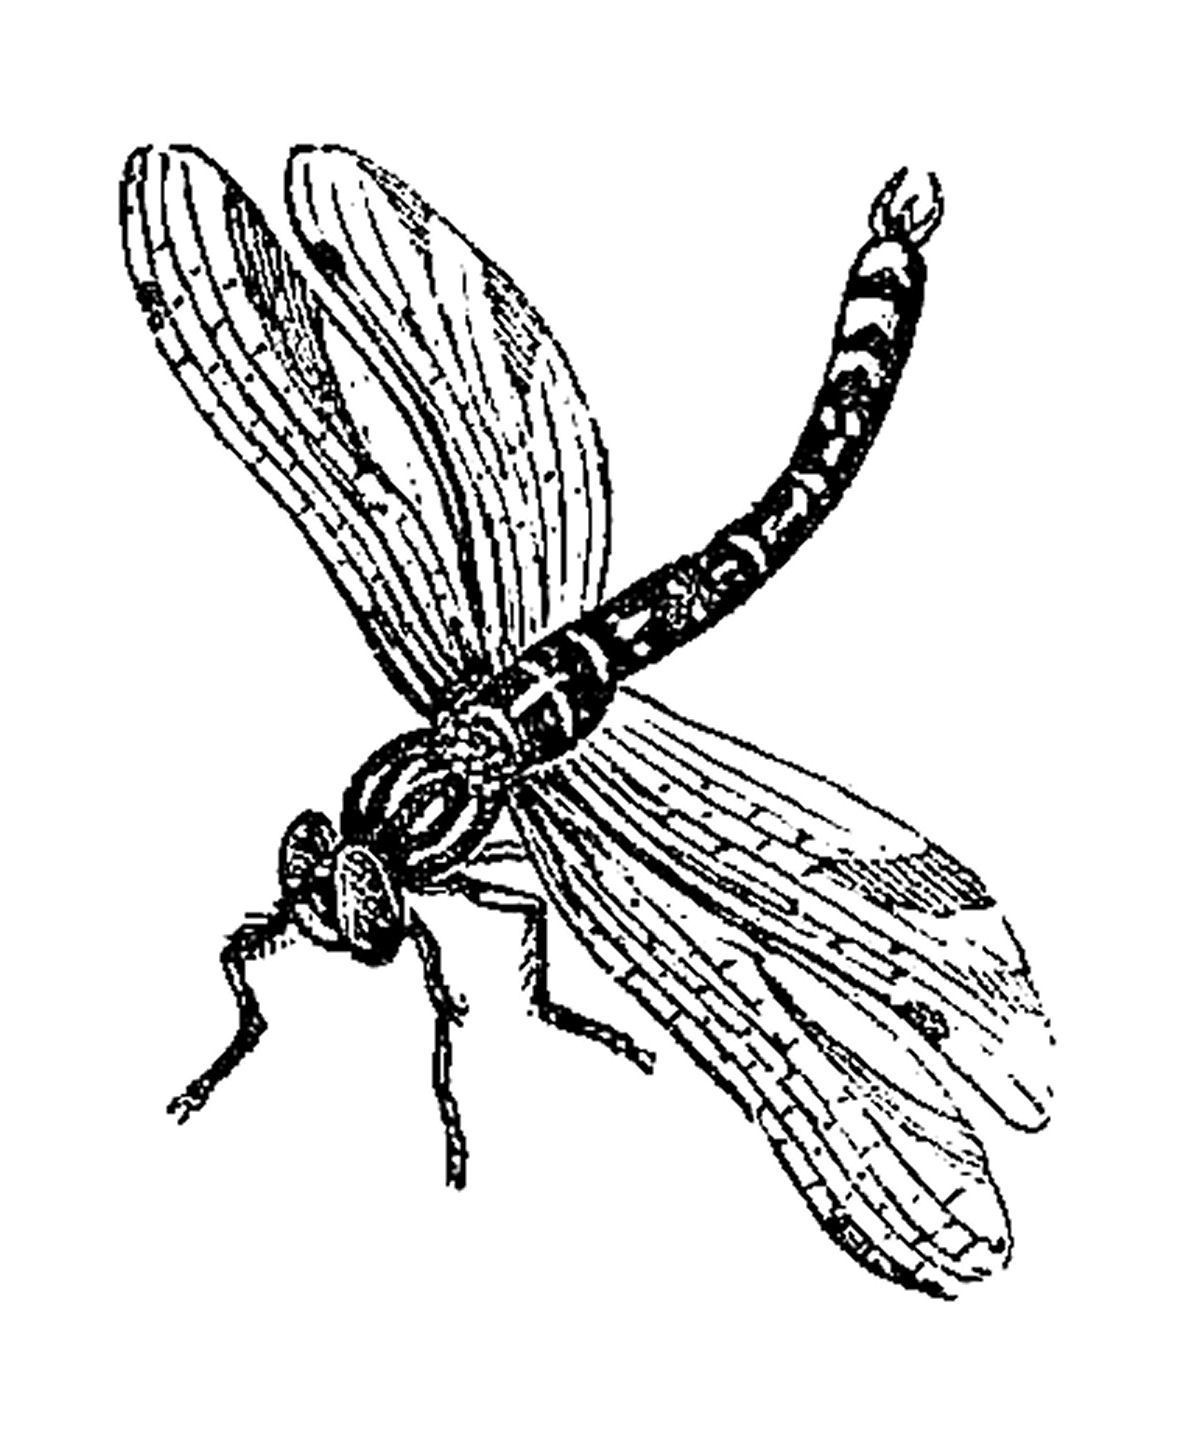 Dragonfly clipart black and white 5 » Clipart Portal.